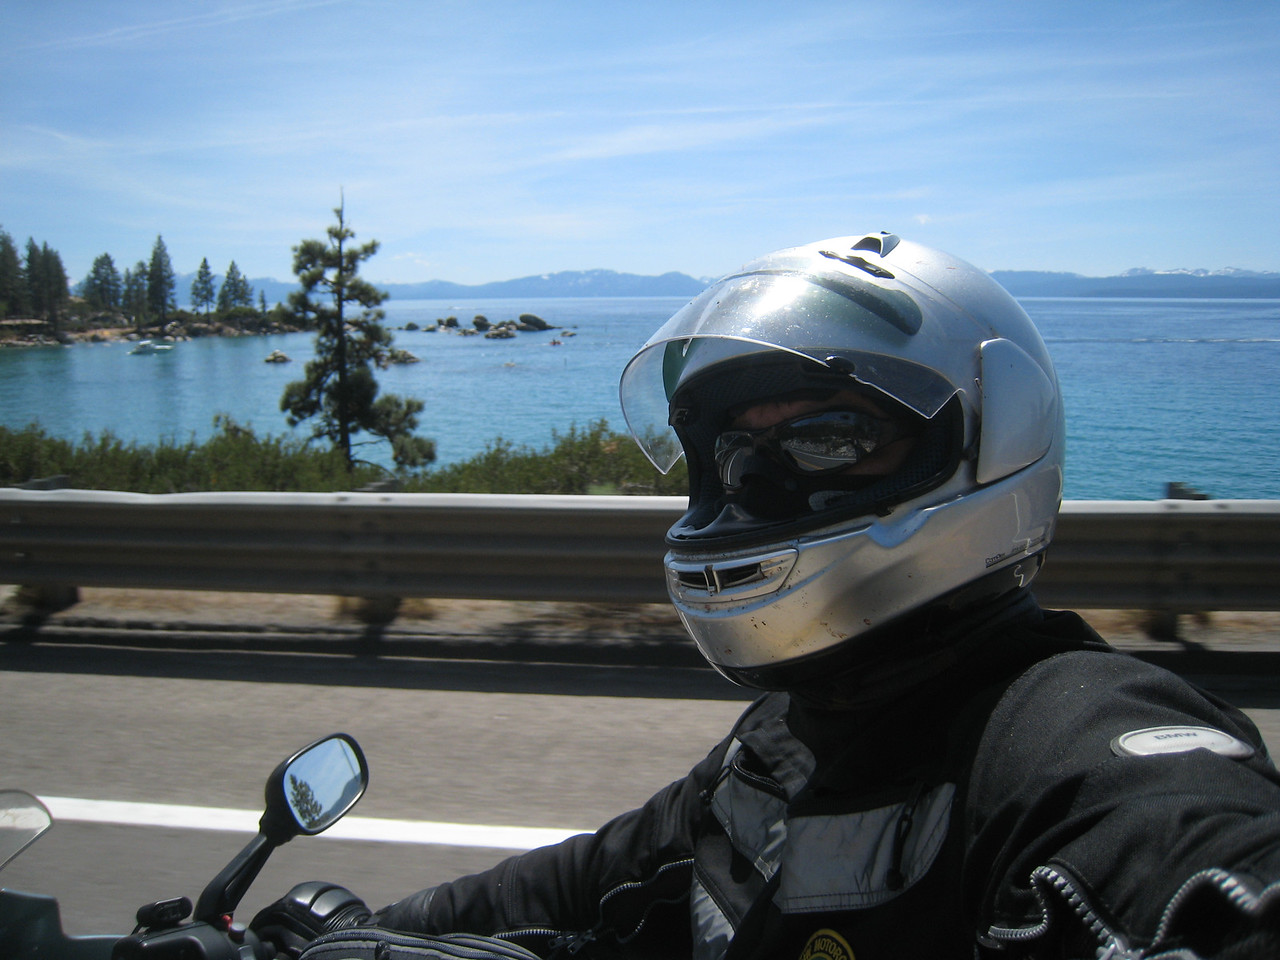 I exit at Truckee, and ride around Lake Tahoe as I find my way home.  The rear drive shows no other signs of problems, and I return home uneventfully.<br /> <br /> The view of the lake caps a great weekend.